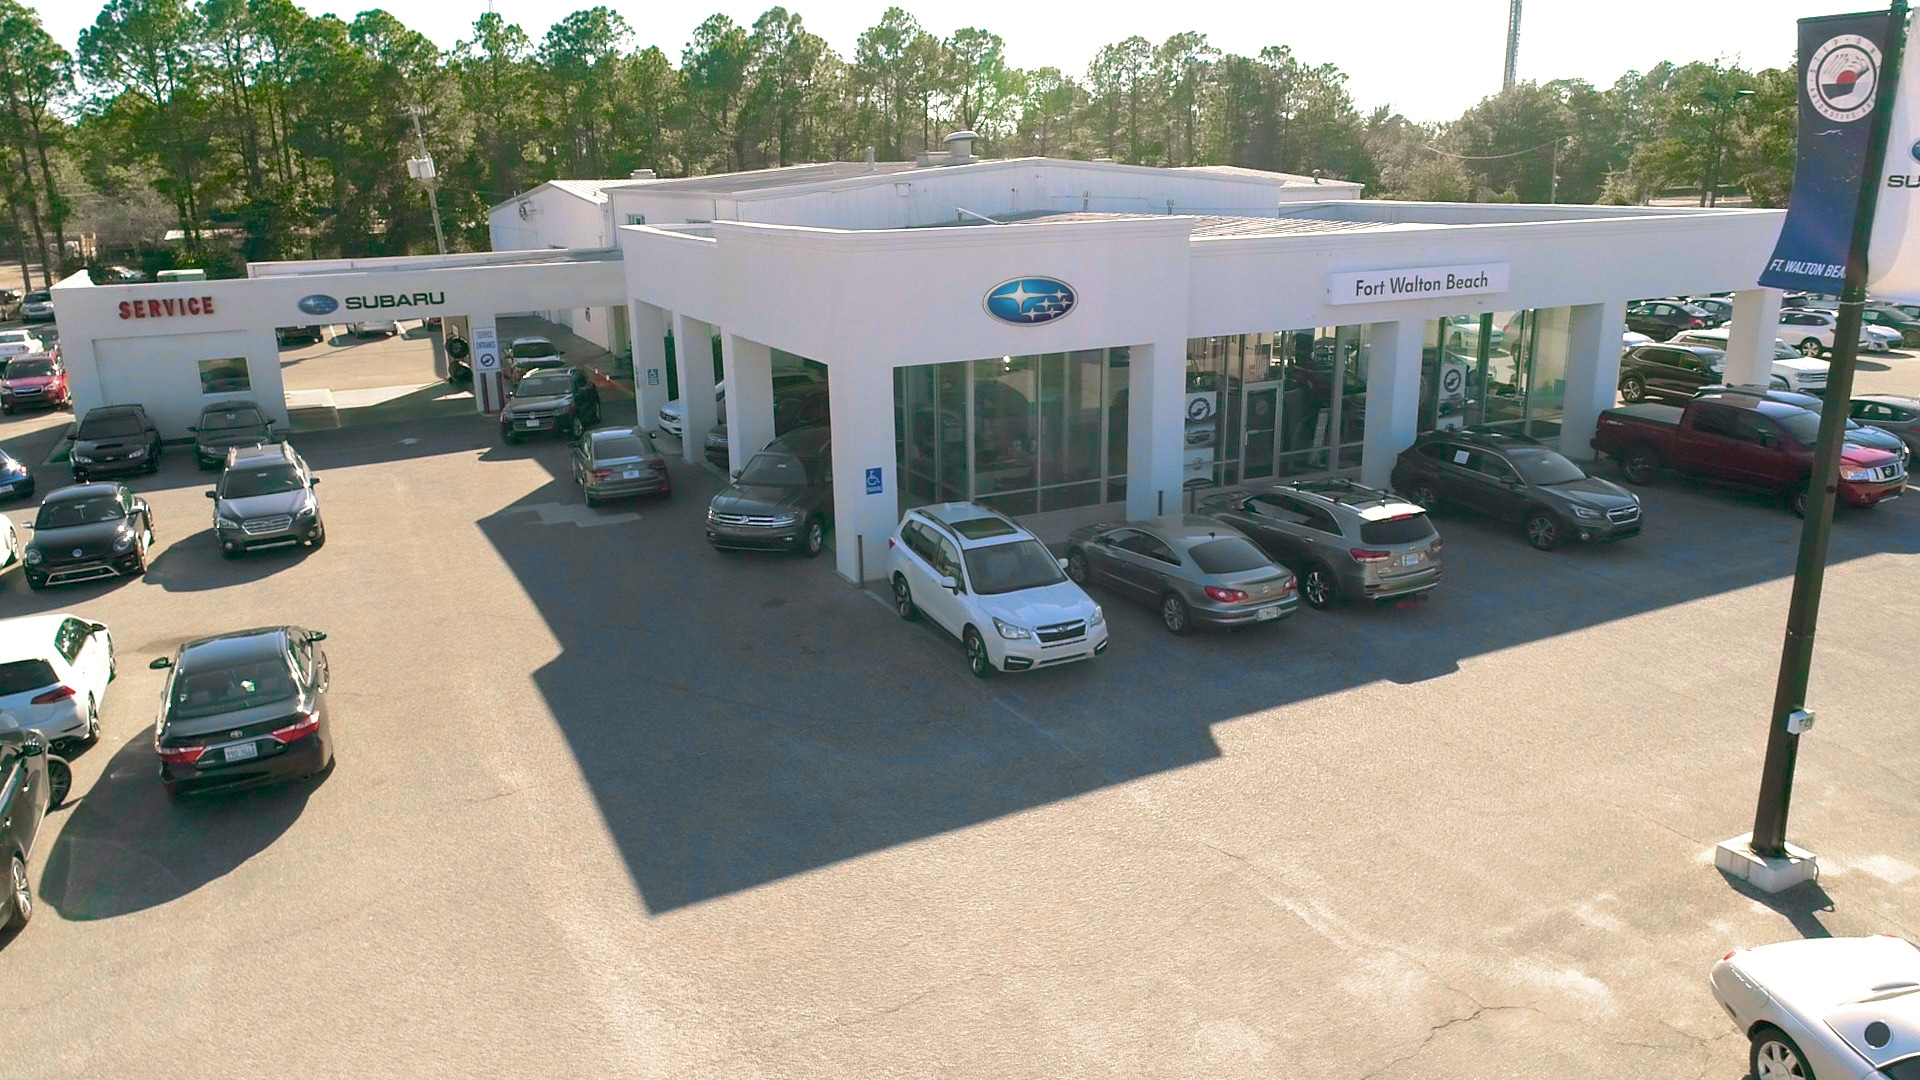 Subaru of Fort Walton Beach Store Photo.jpg